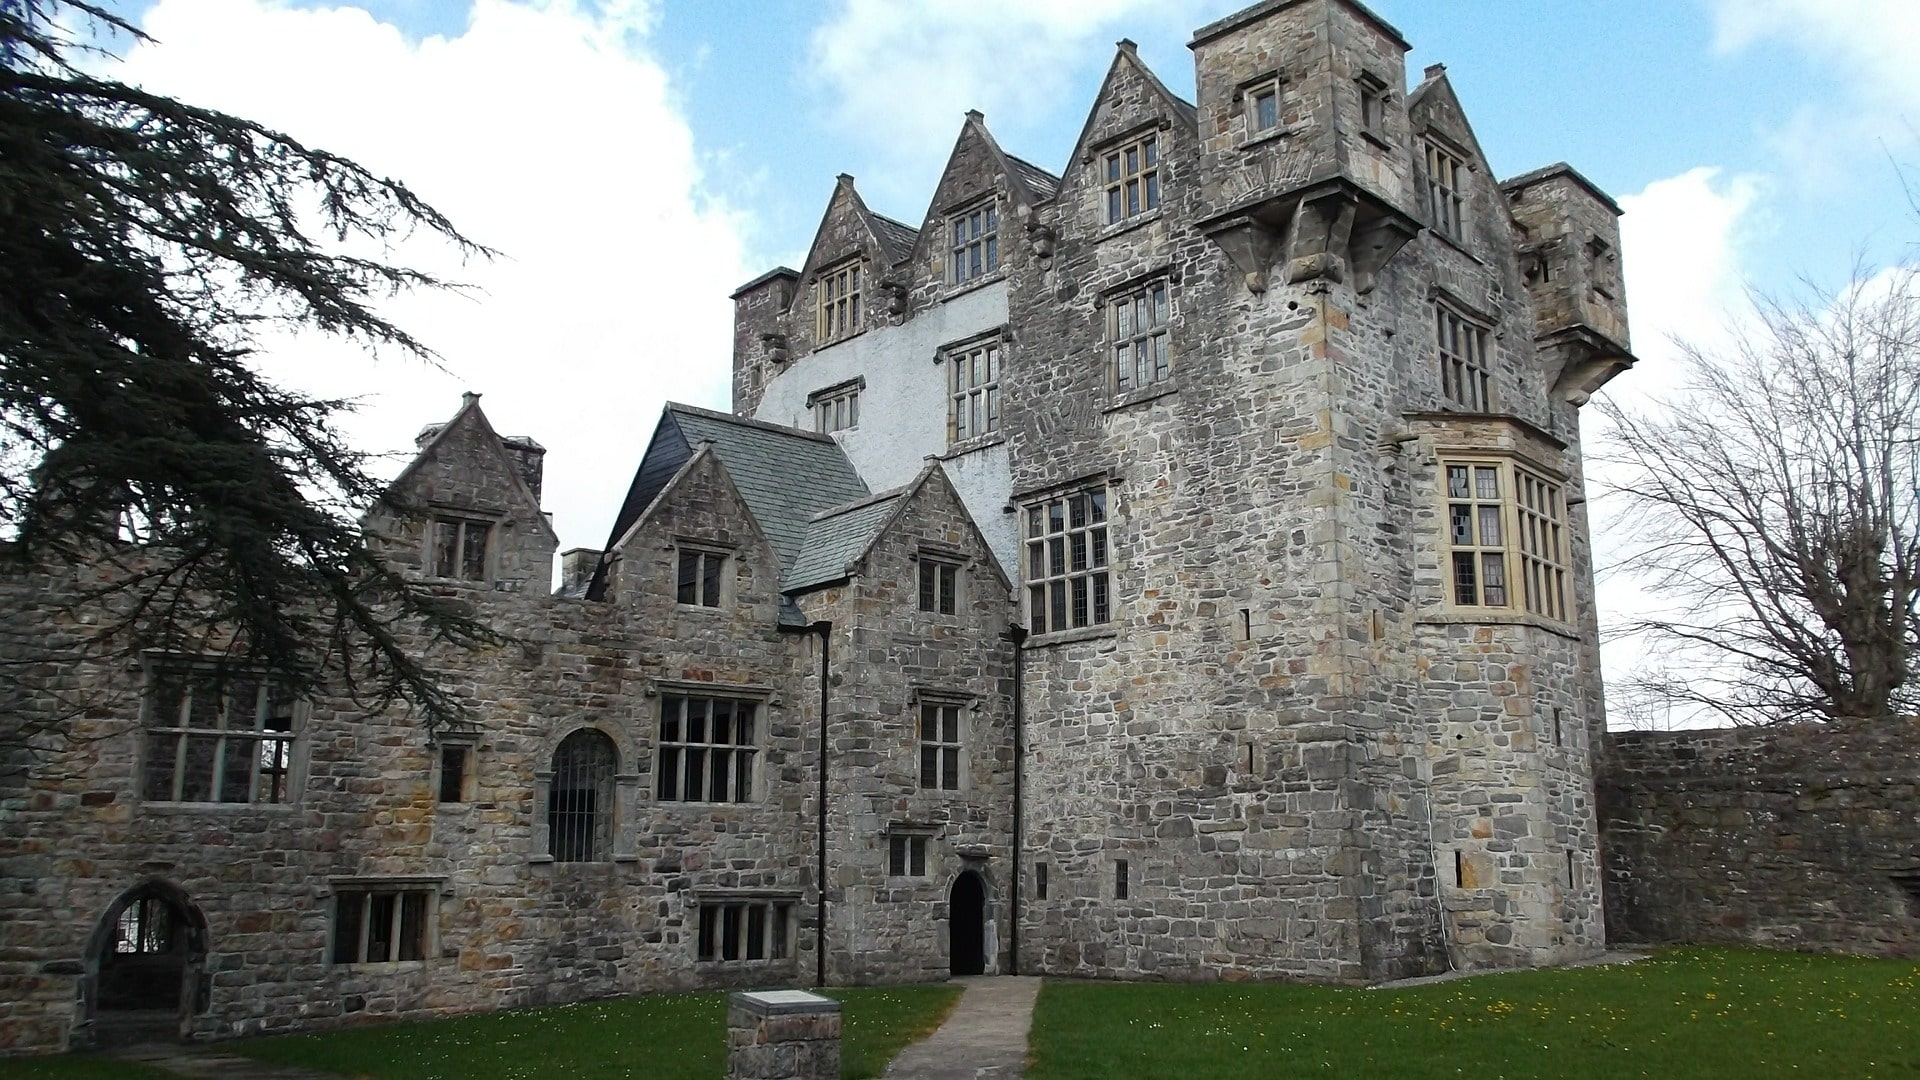 Exploring Donegal castle is a great thing to do in Donegal